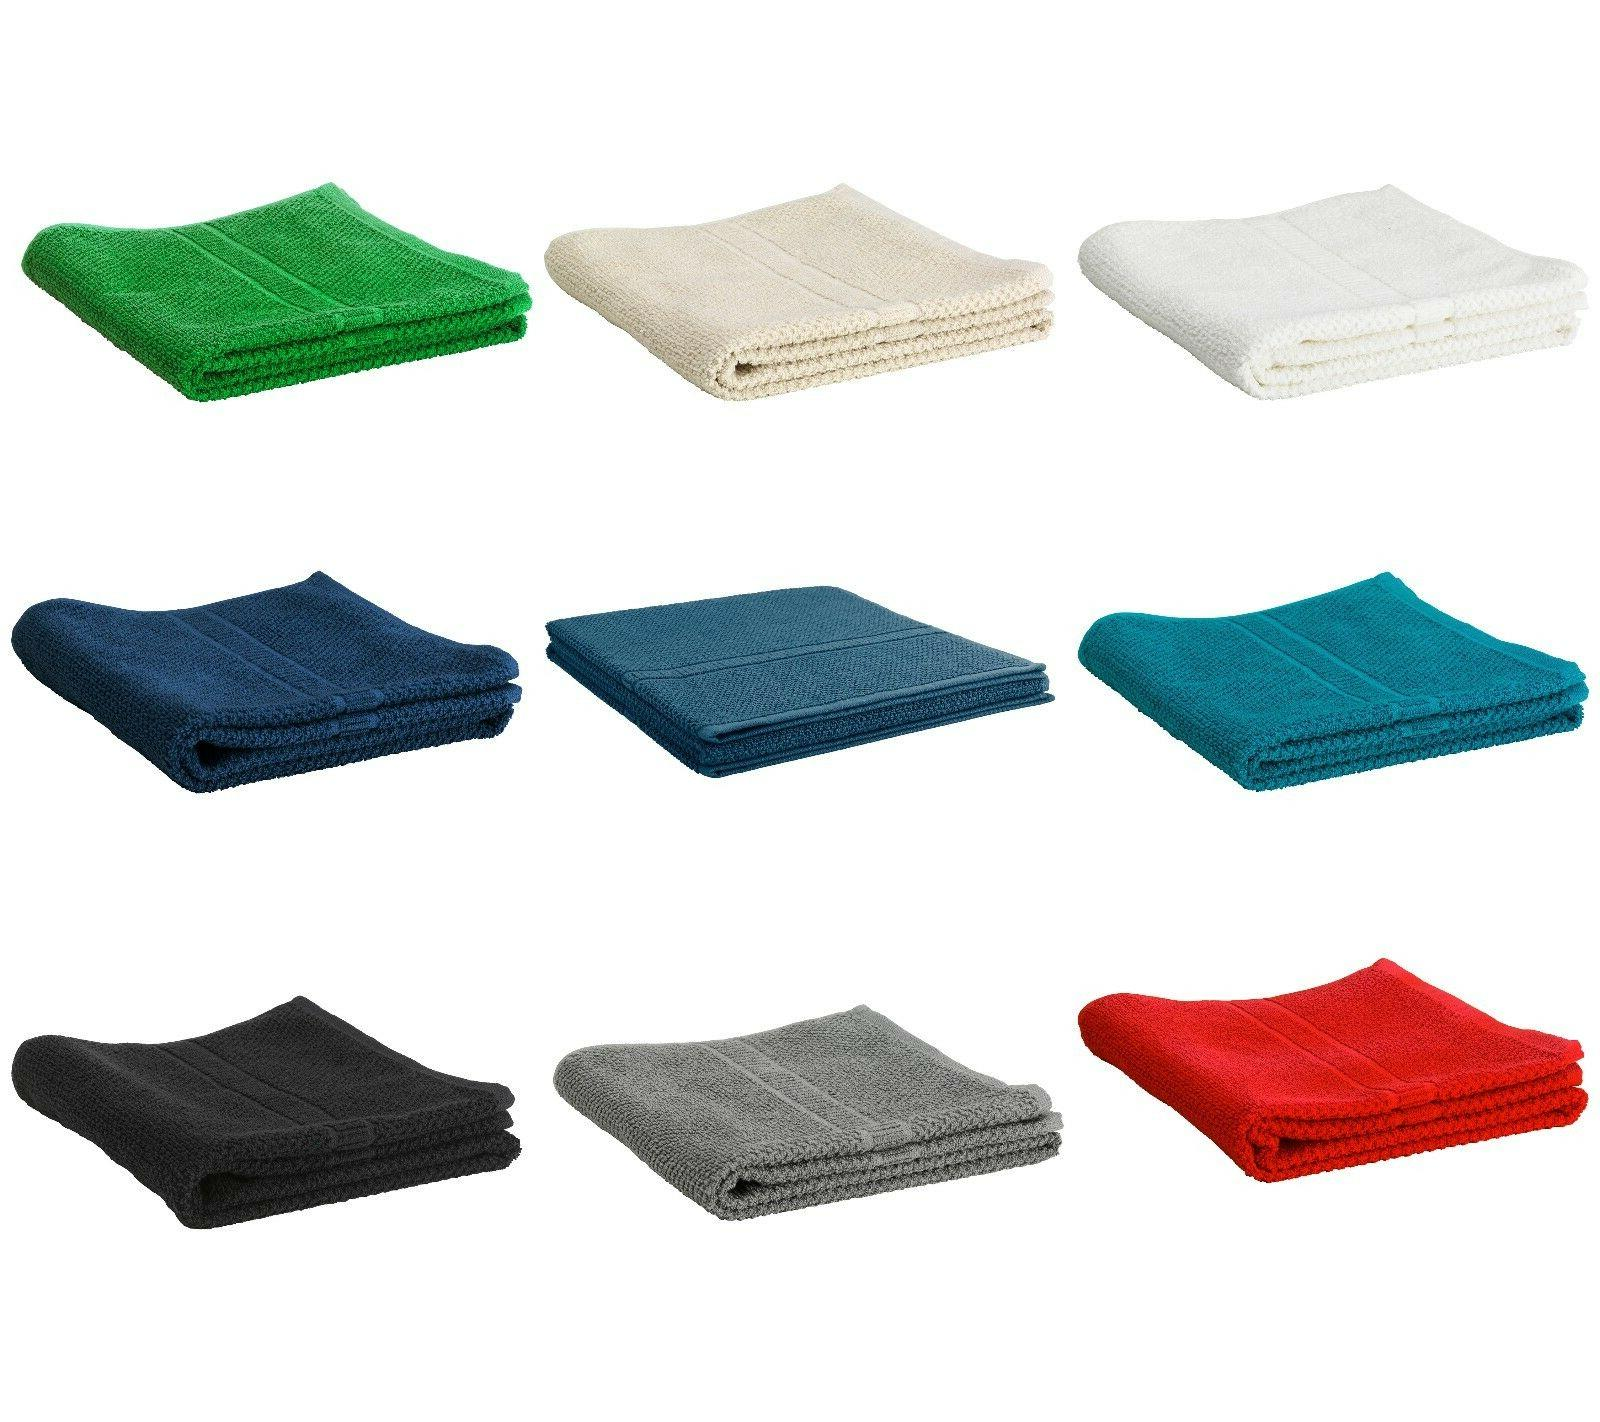 frajen assorted sizes assorted colors hand bath